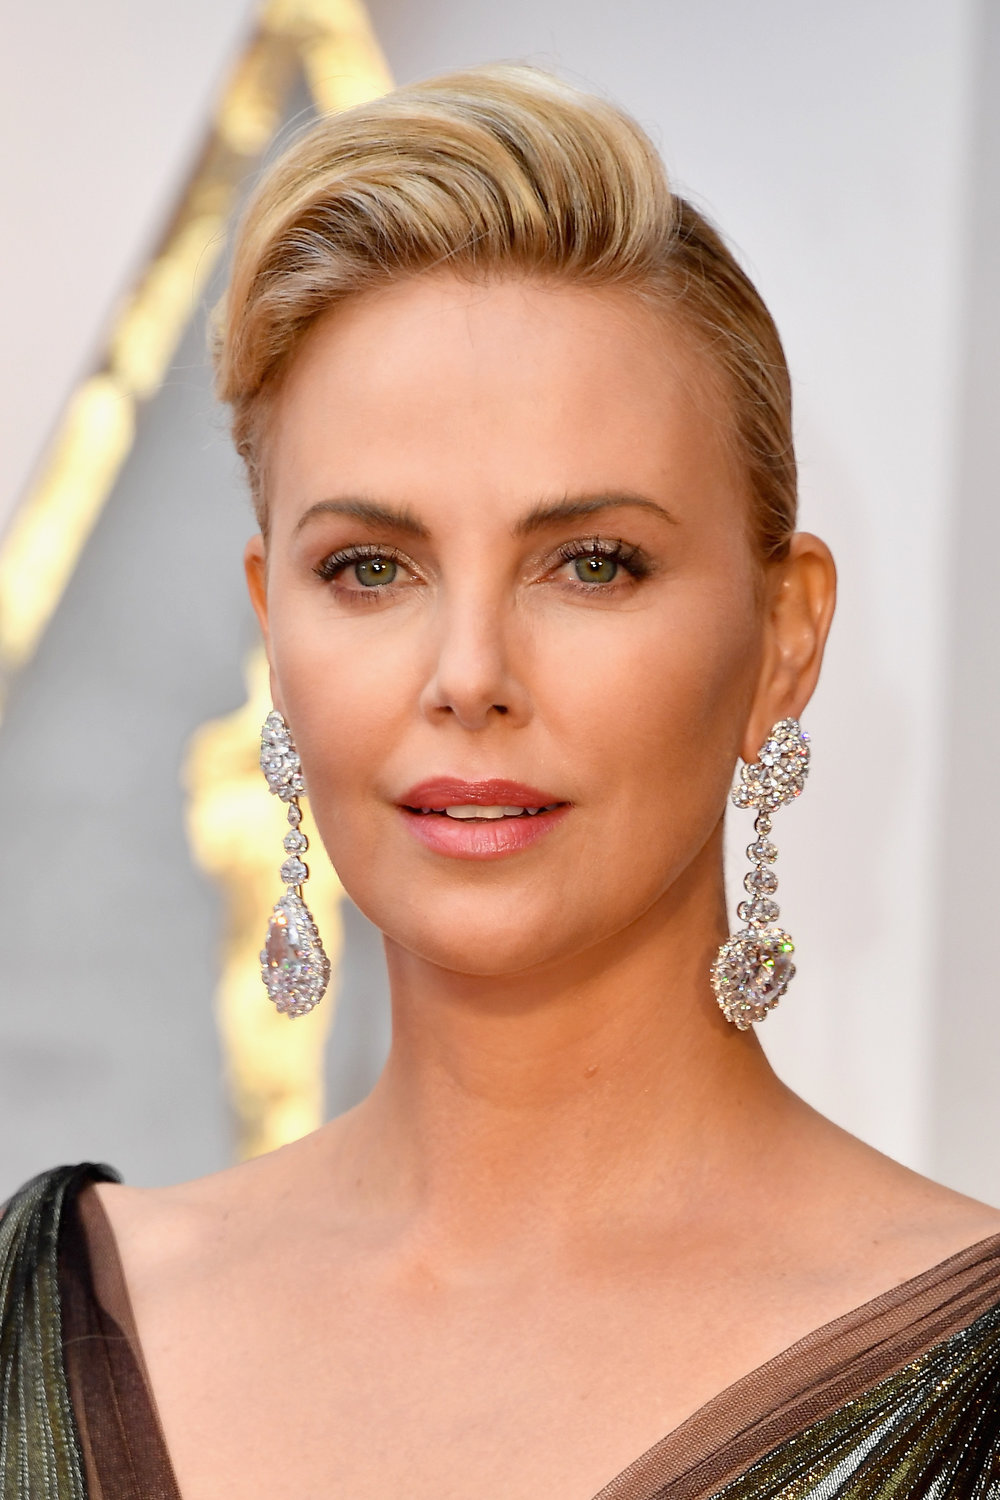 Actress Charlize Theron wearing Chopard